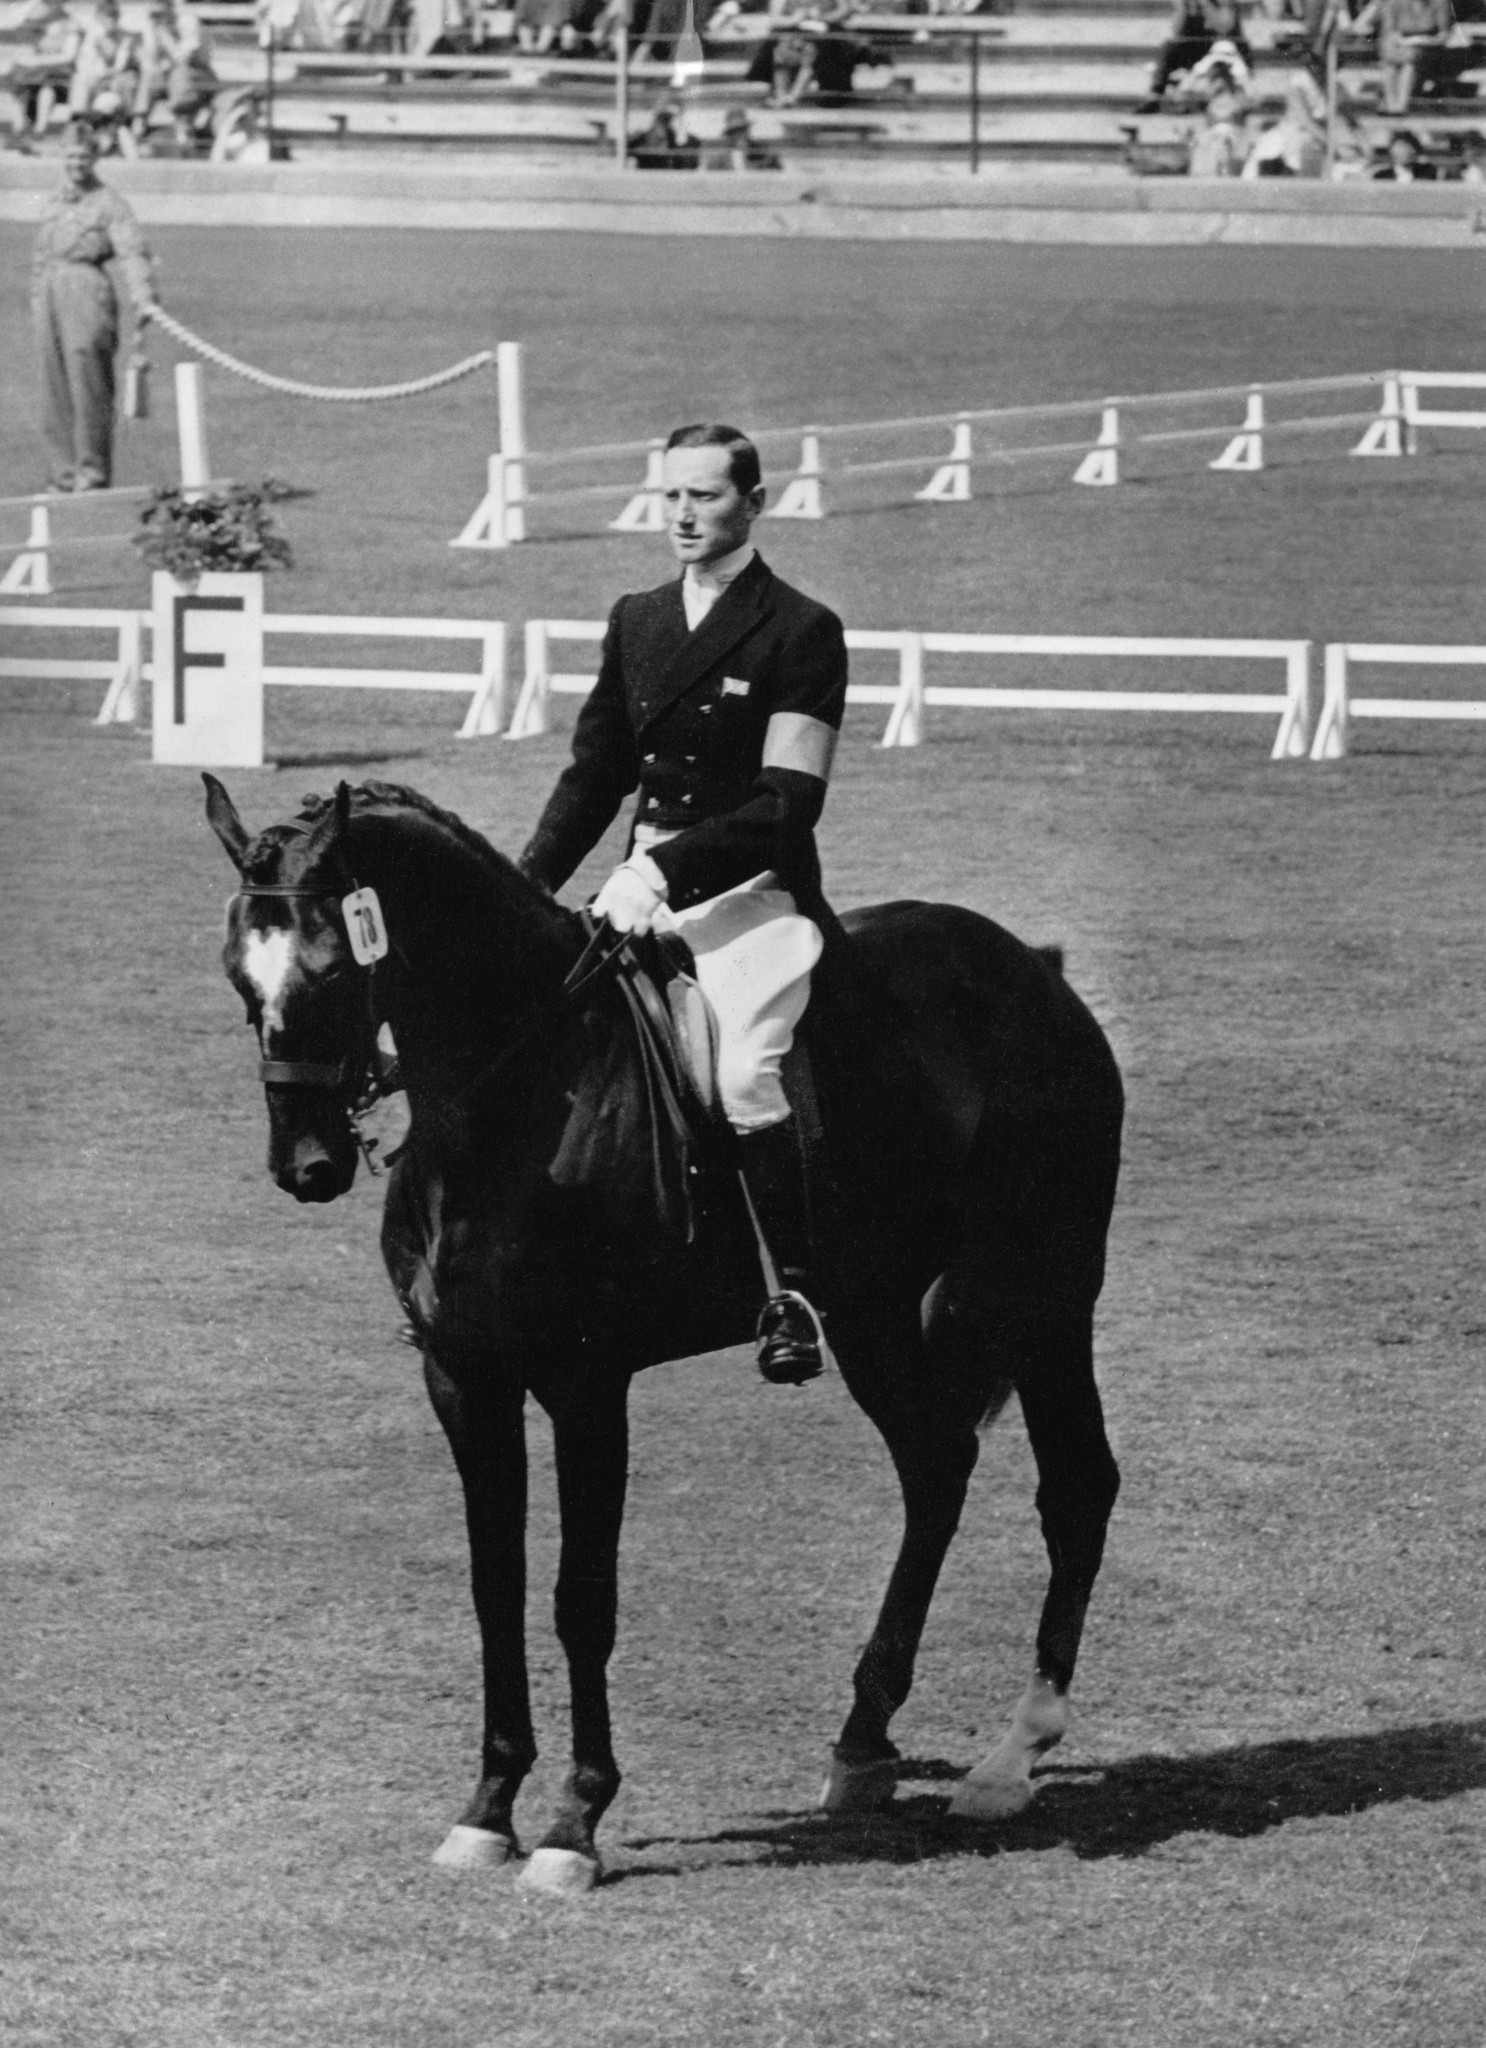 Bertie Hill on Countryman V in front of Queen Elizabeth II at the 1956 Stockholm Olympics ©Getty Images